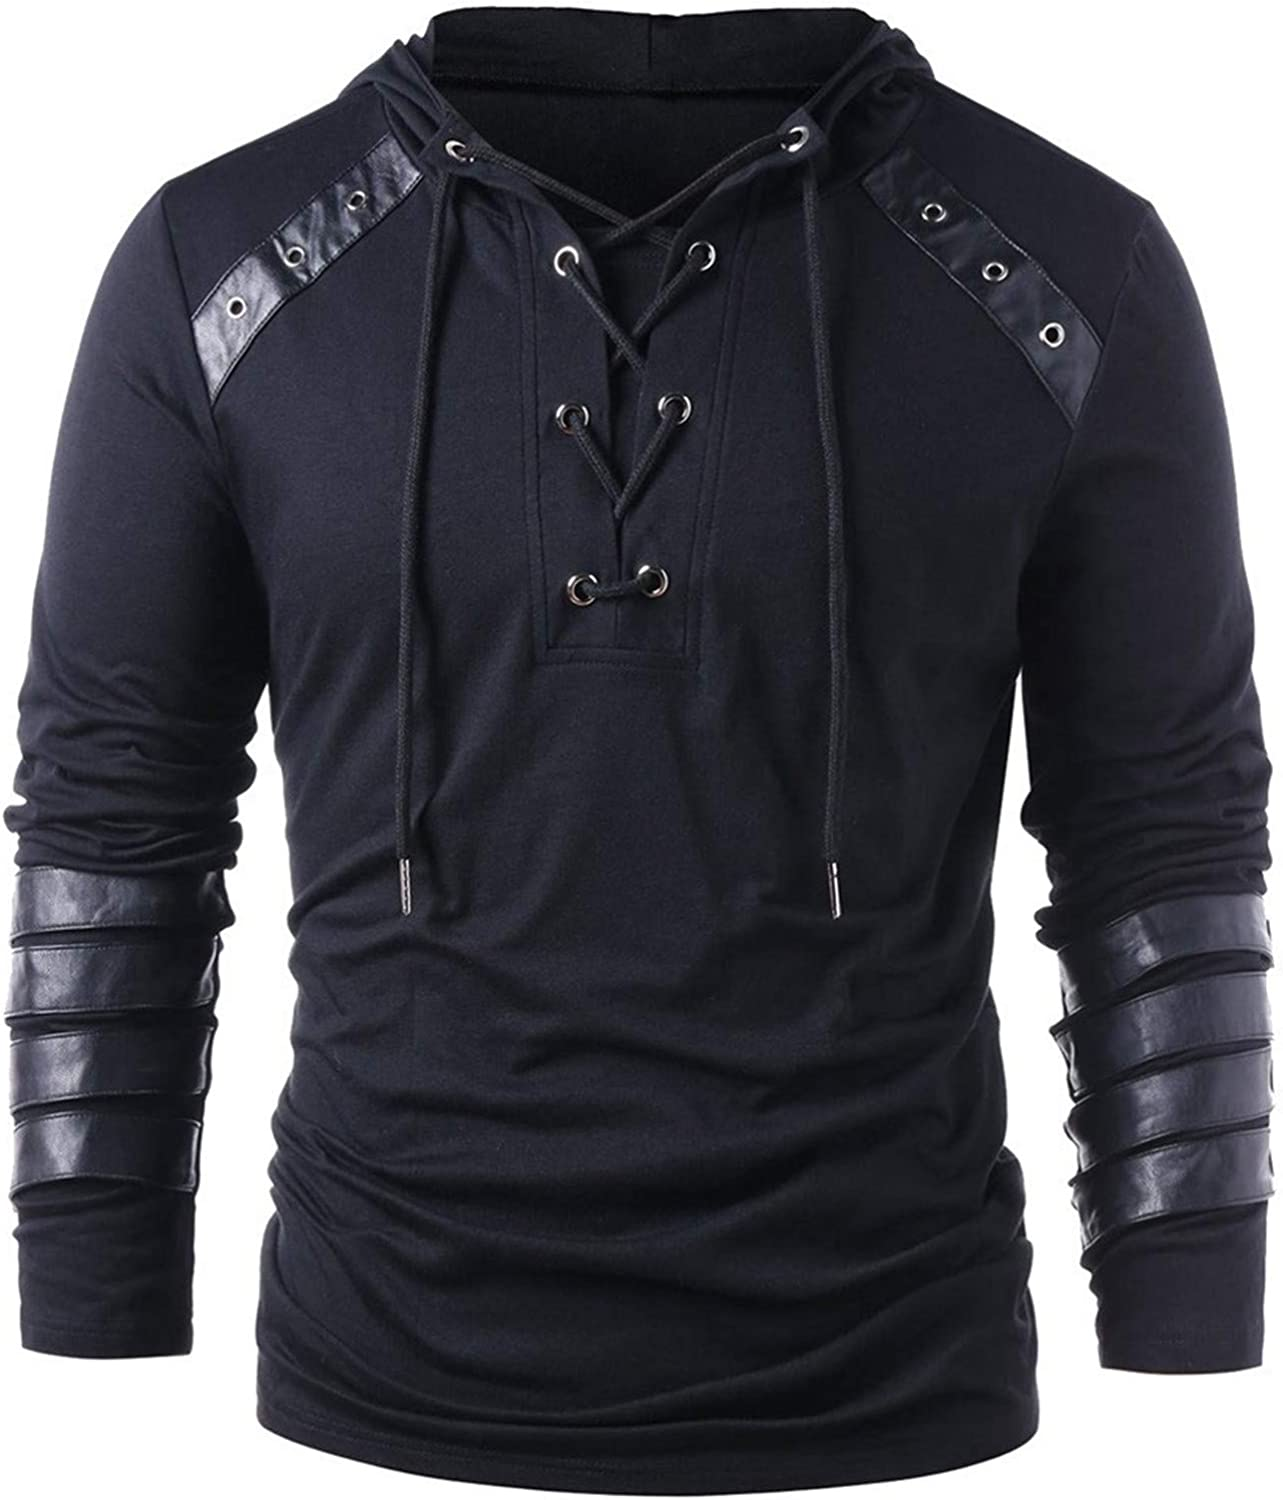 HONGJ Gothic Steampunk Shirts for Mens, Lace Up Tether Knight Pullover Hooded Sweatshirts Tops Teen Boys Medieval Jumper